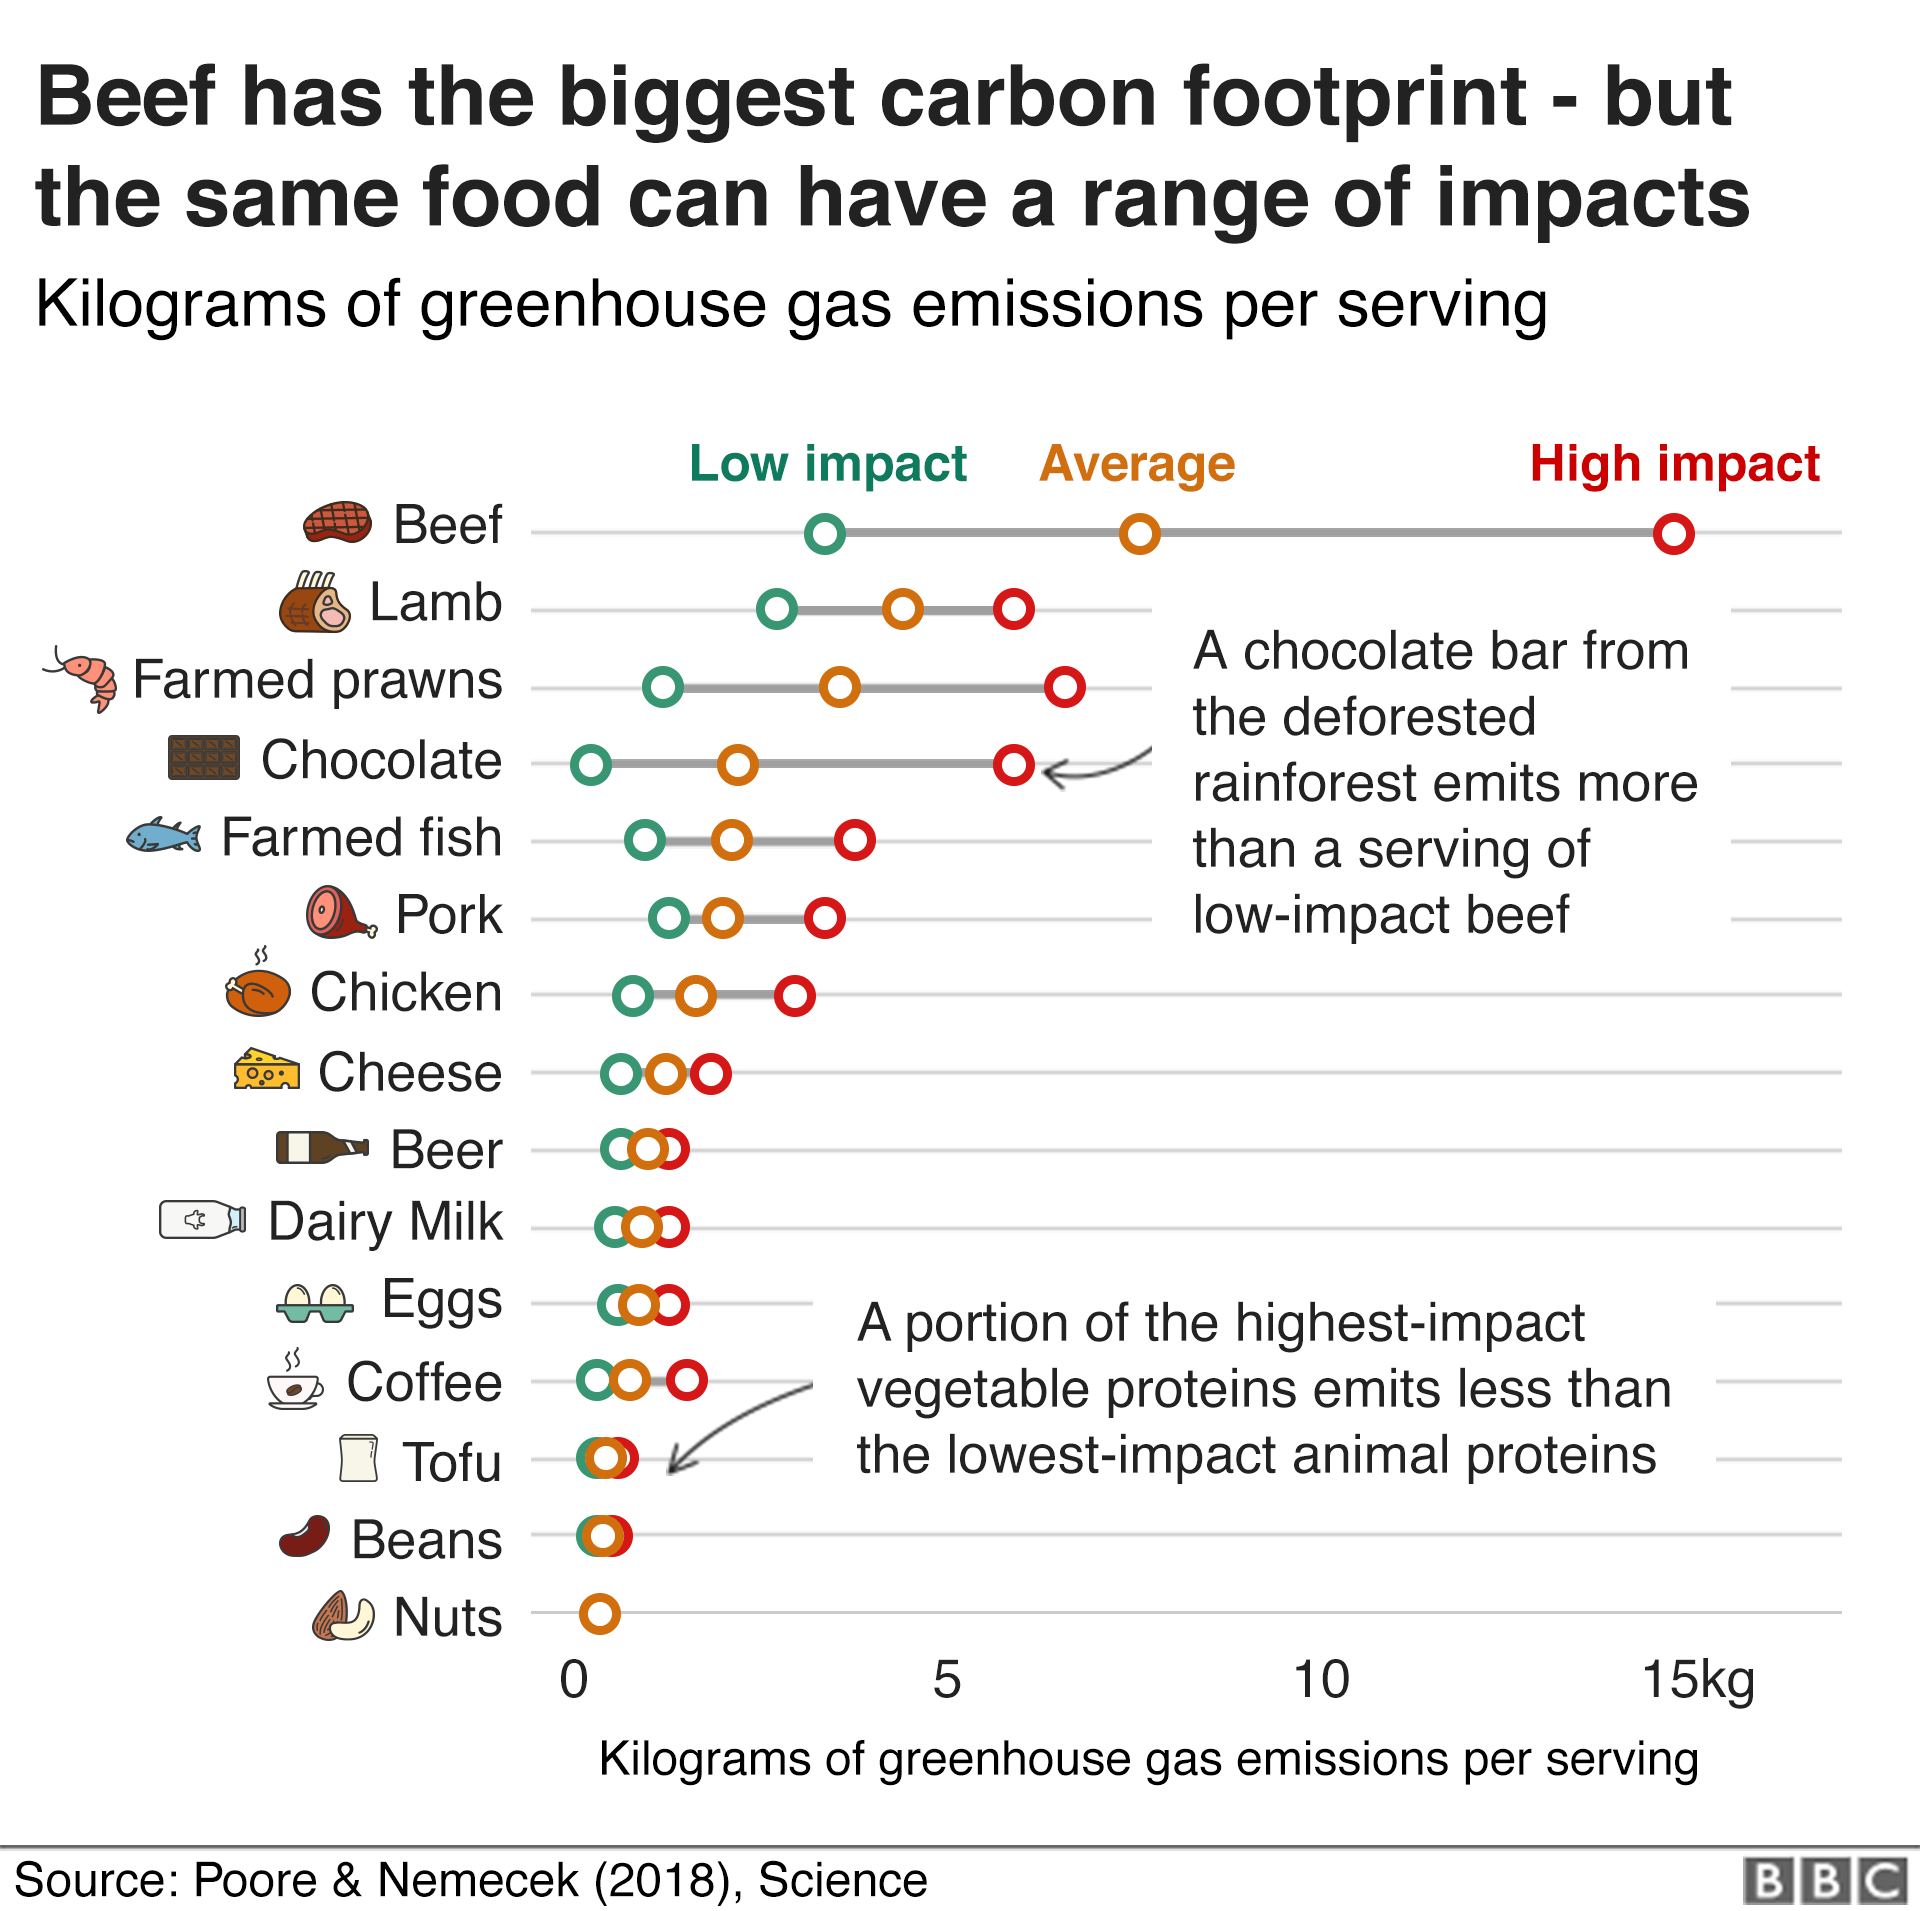 Chart showing the greenhouse gas emissions of certain food types